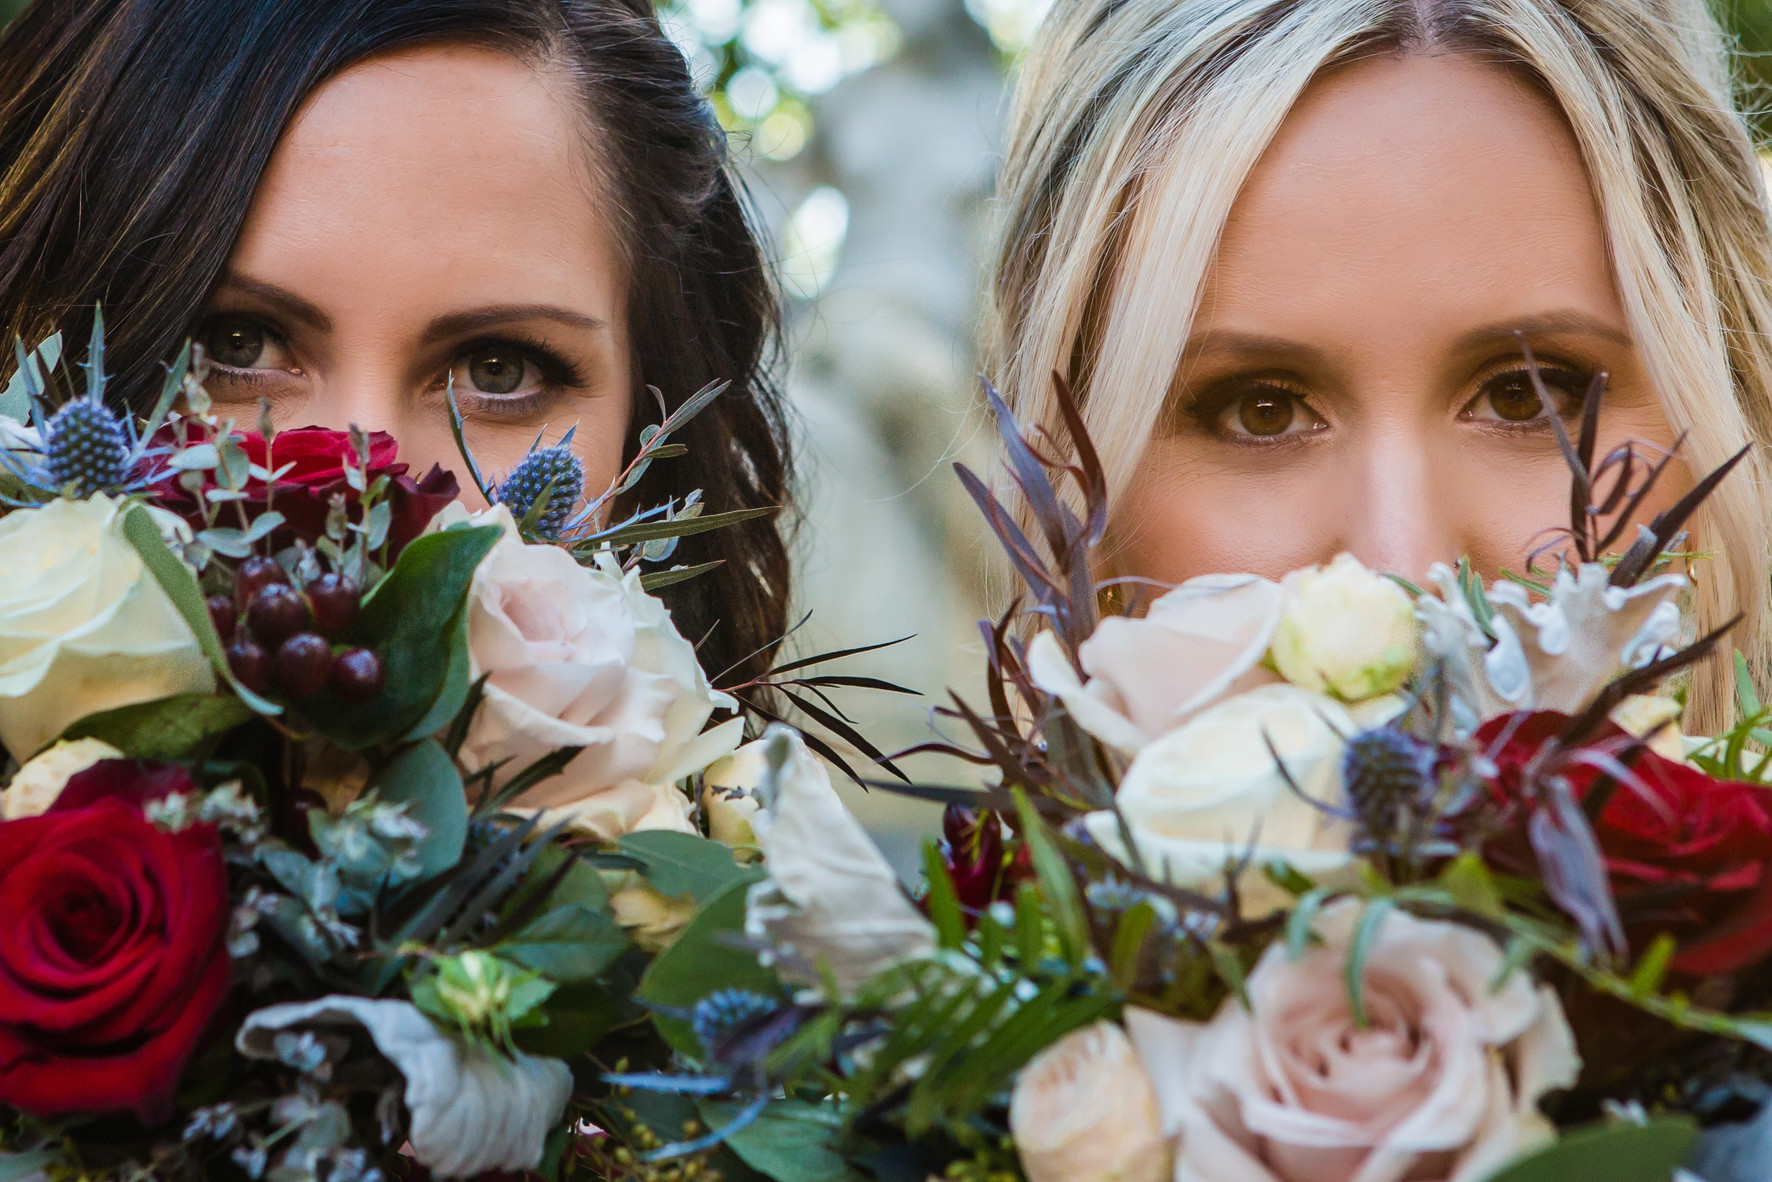 San Diego Wedding Photographer, Best of 2018 wedding photography, Berlynn Photography, San Diego Wedding Photography, bride with sister portrait